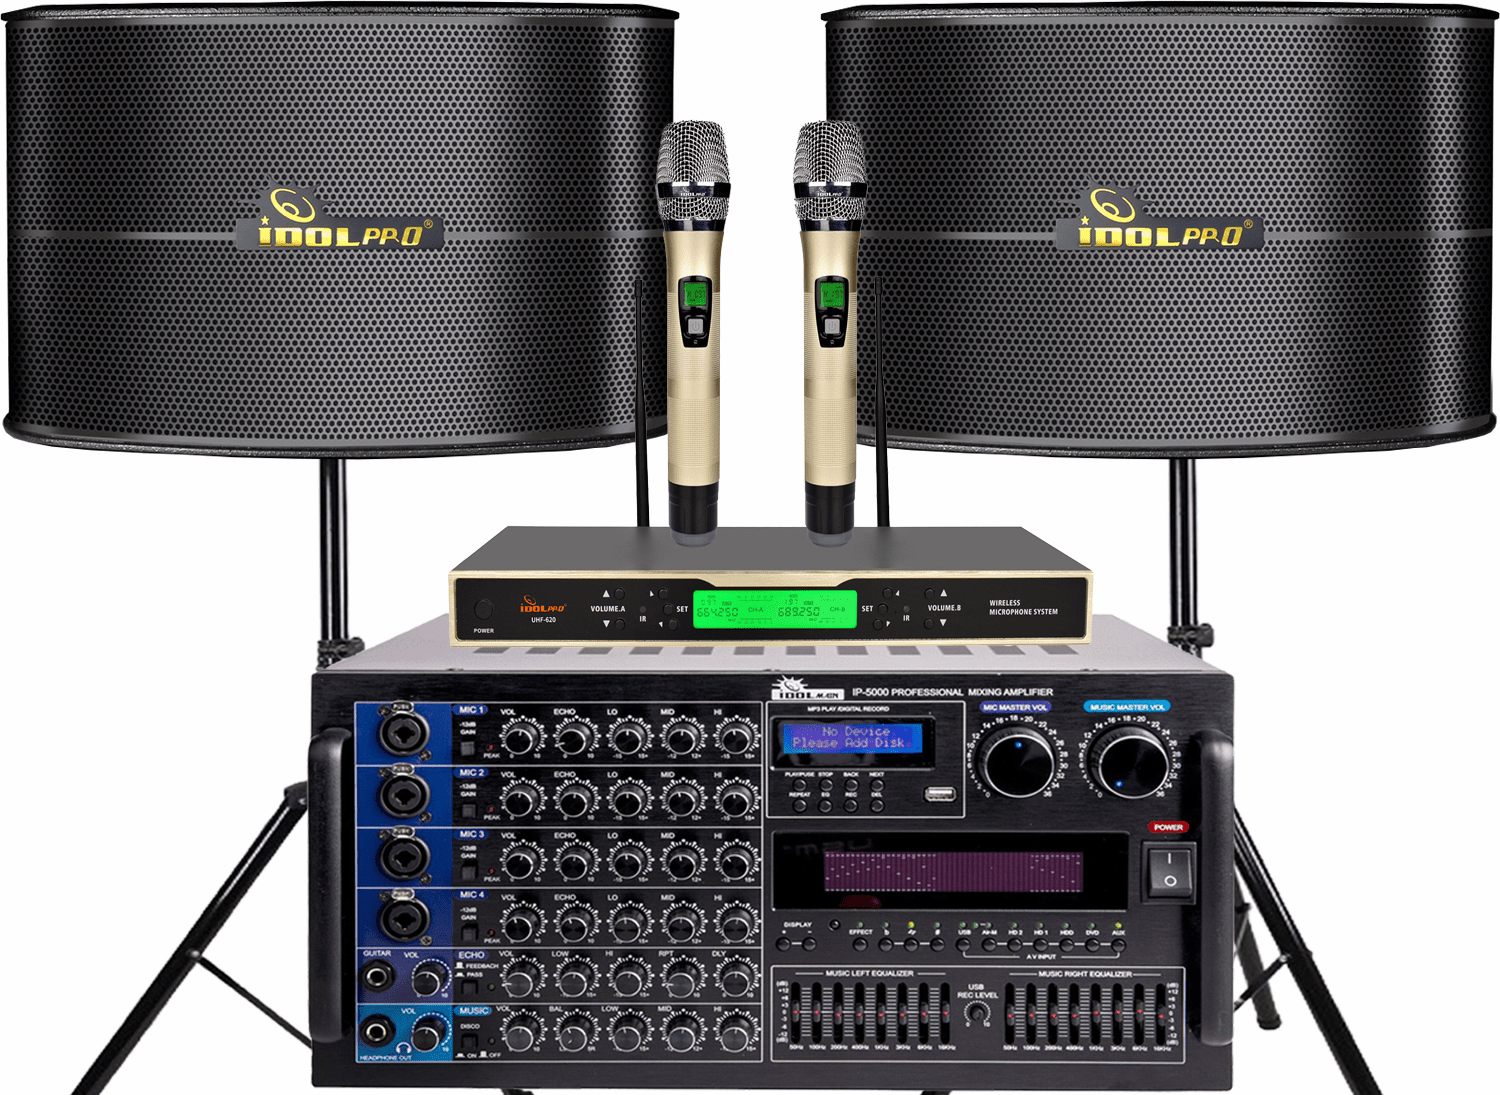 "<font color="" blue"">PACKAGE 9</font>--IPS-13 Speakers & UHF-620 Microphone & IP-5000 Mixing Amplifier"